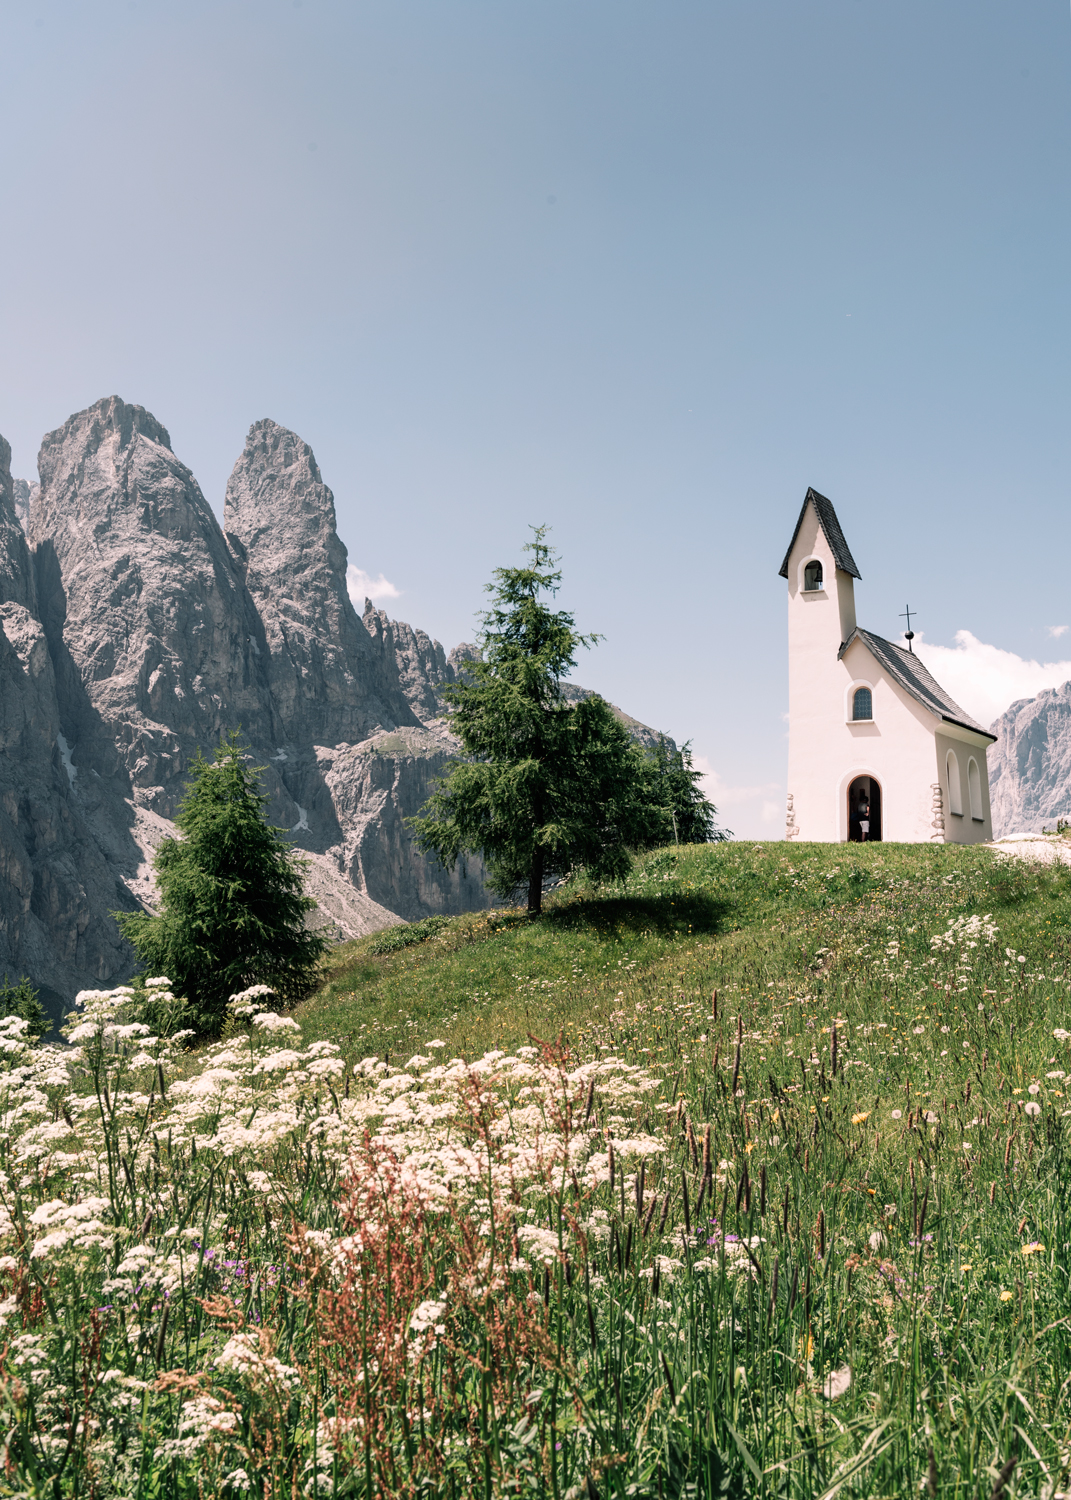 Small chapel in the dolomites Italy - Kirsty Owen photography